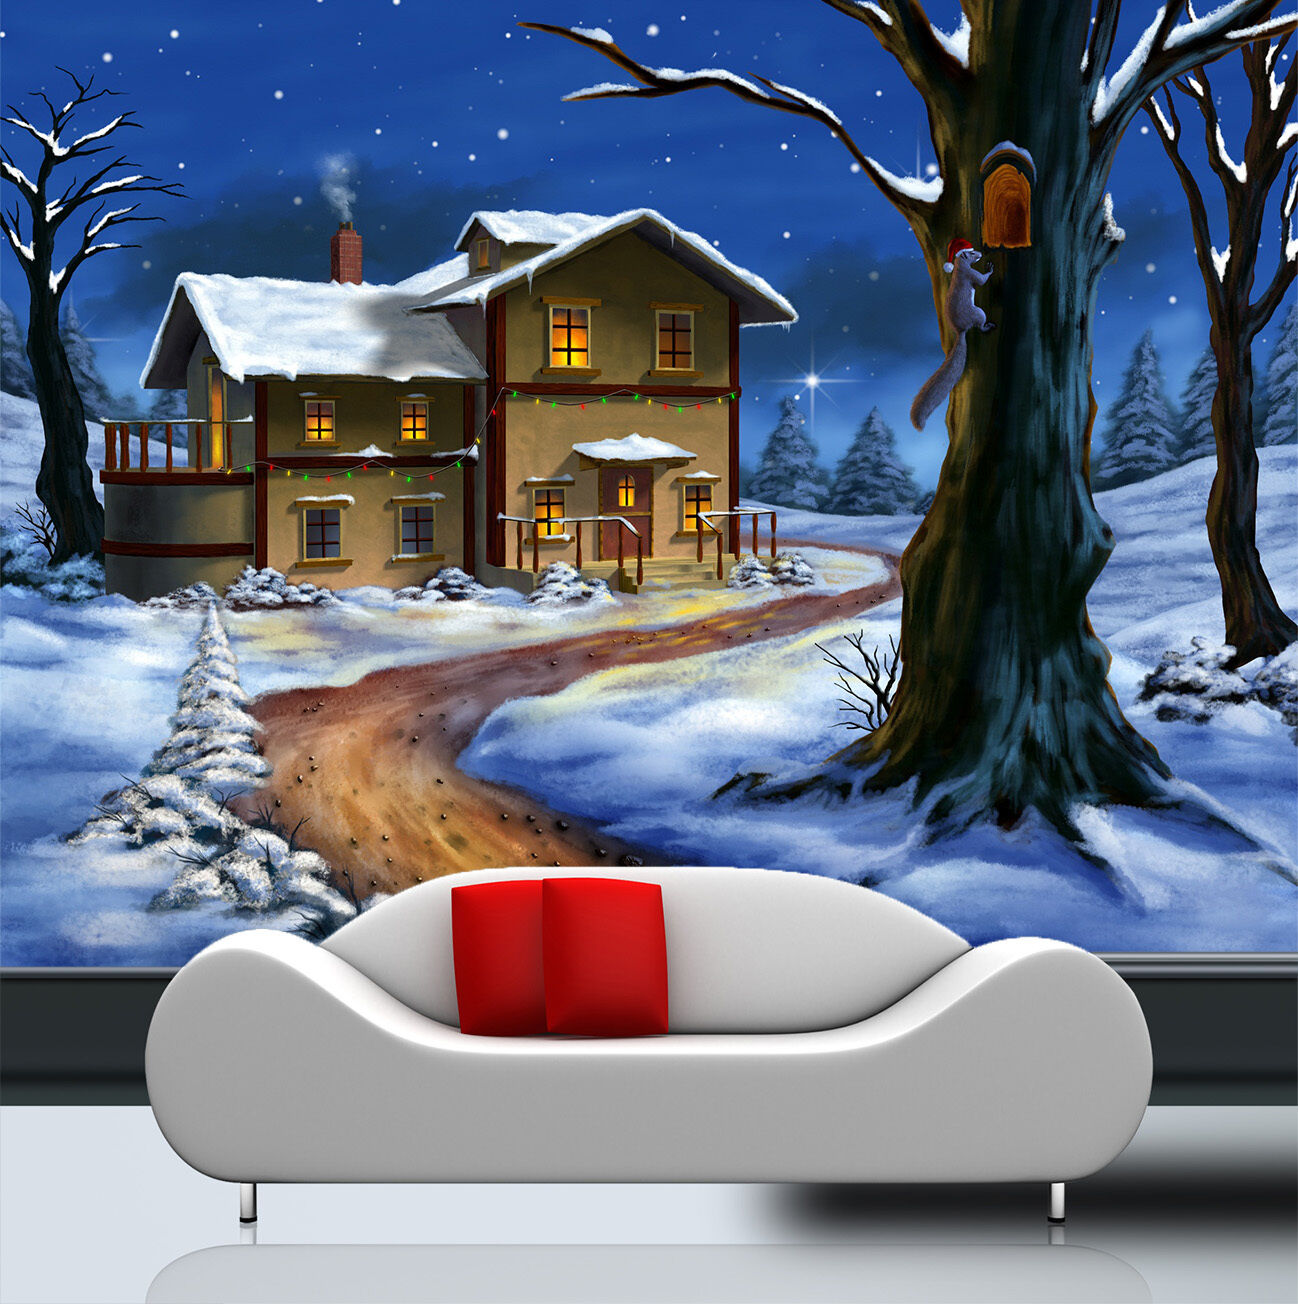 3D Snow Christmas Forest Wall Paper wall Print Decal Wall Deco Indoor wall Mural